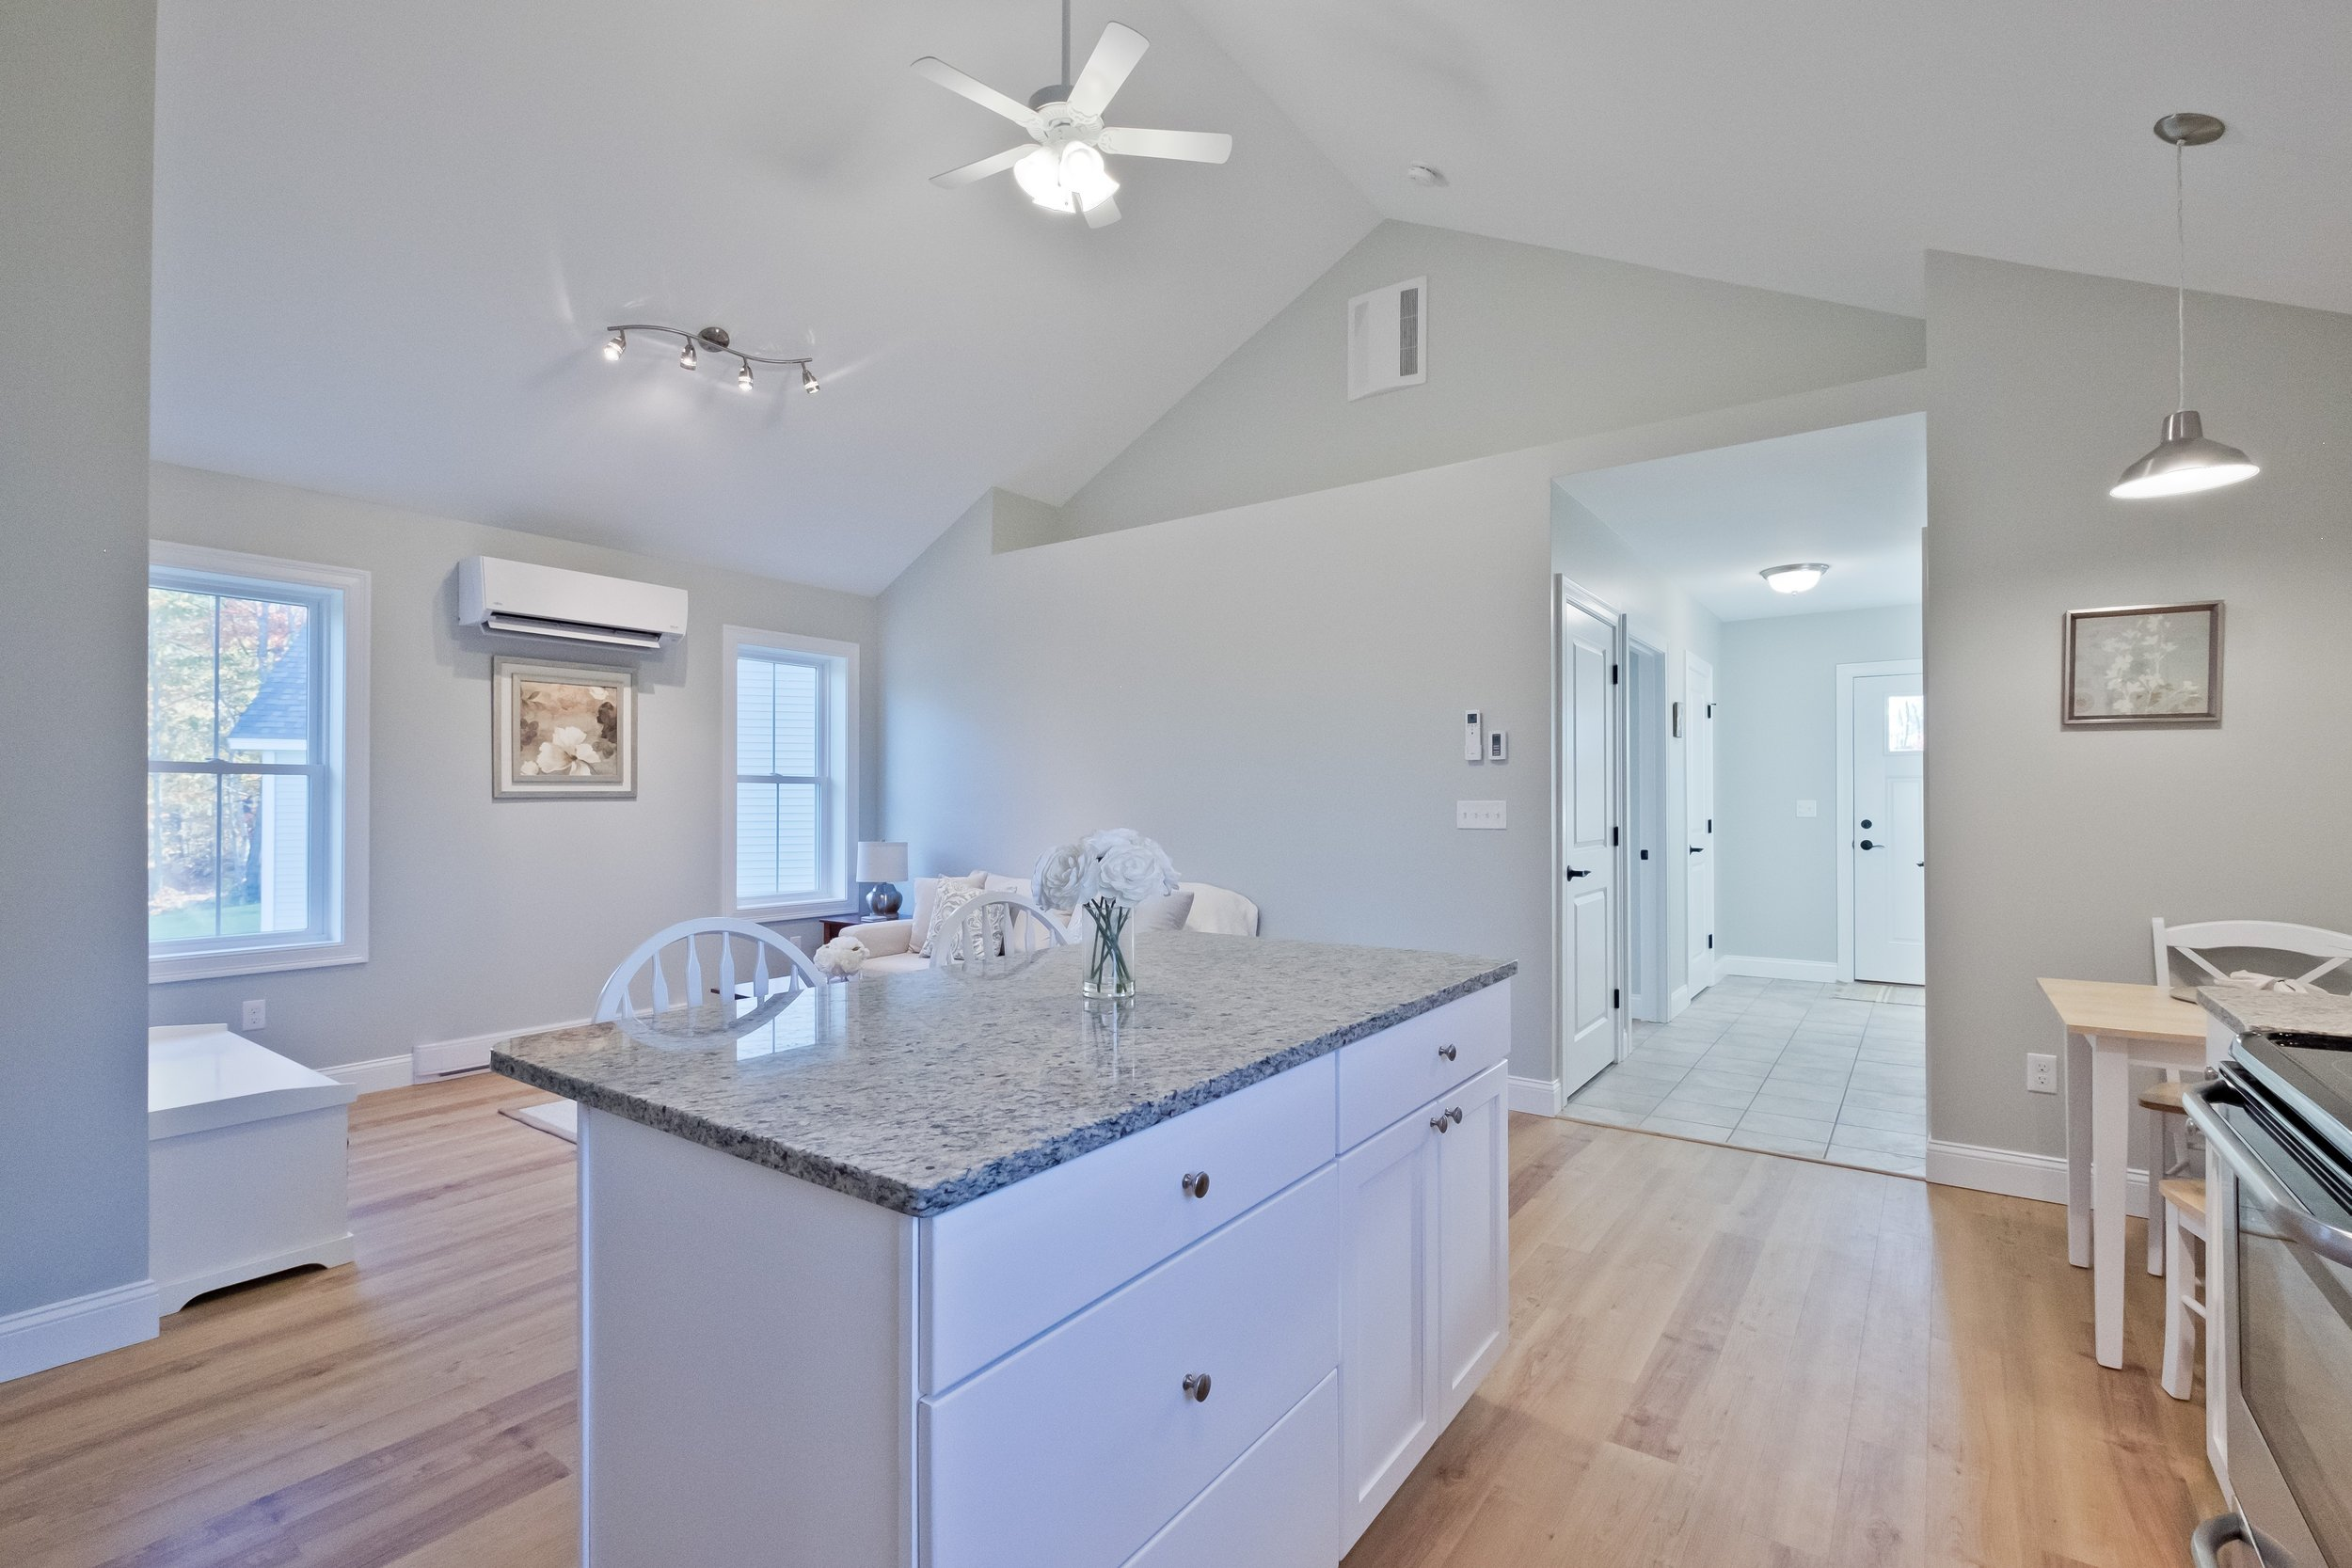 The Cottages at Willett Brook in Bridgton, built by Maine Eco Homes, include an energy-efficient design and plenty of natural light. Photo: Maine Virtual Home Tours, courtesy of Main Eco Homes